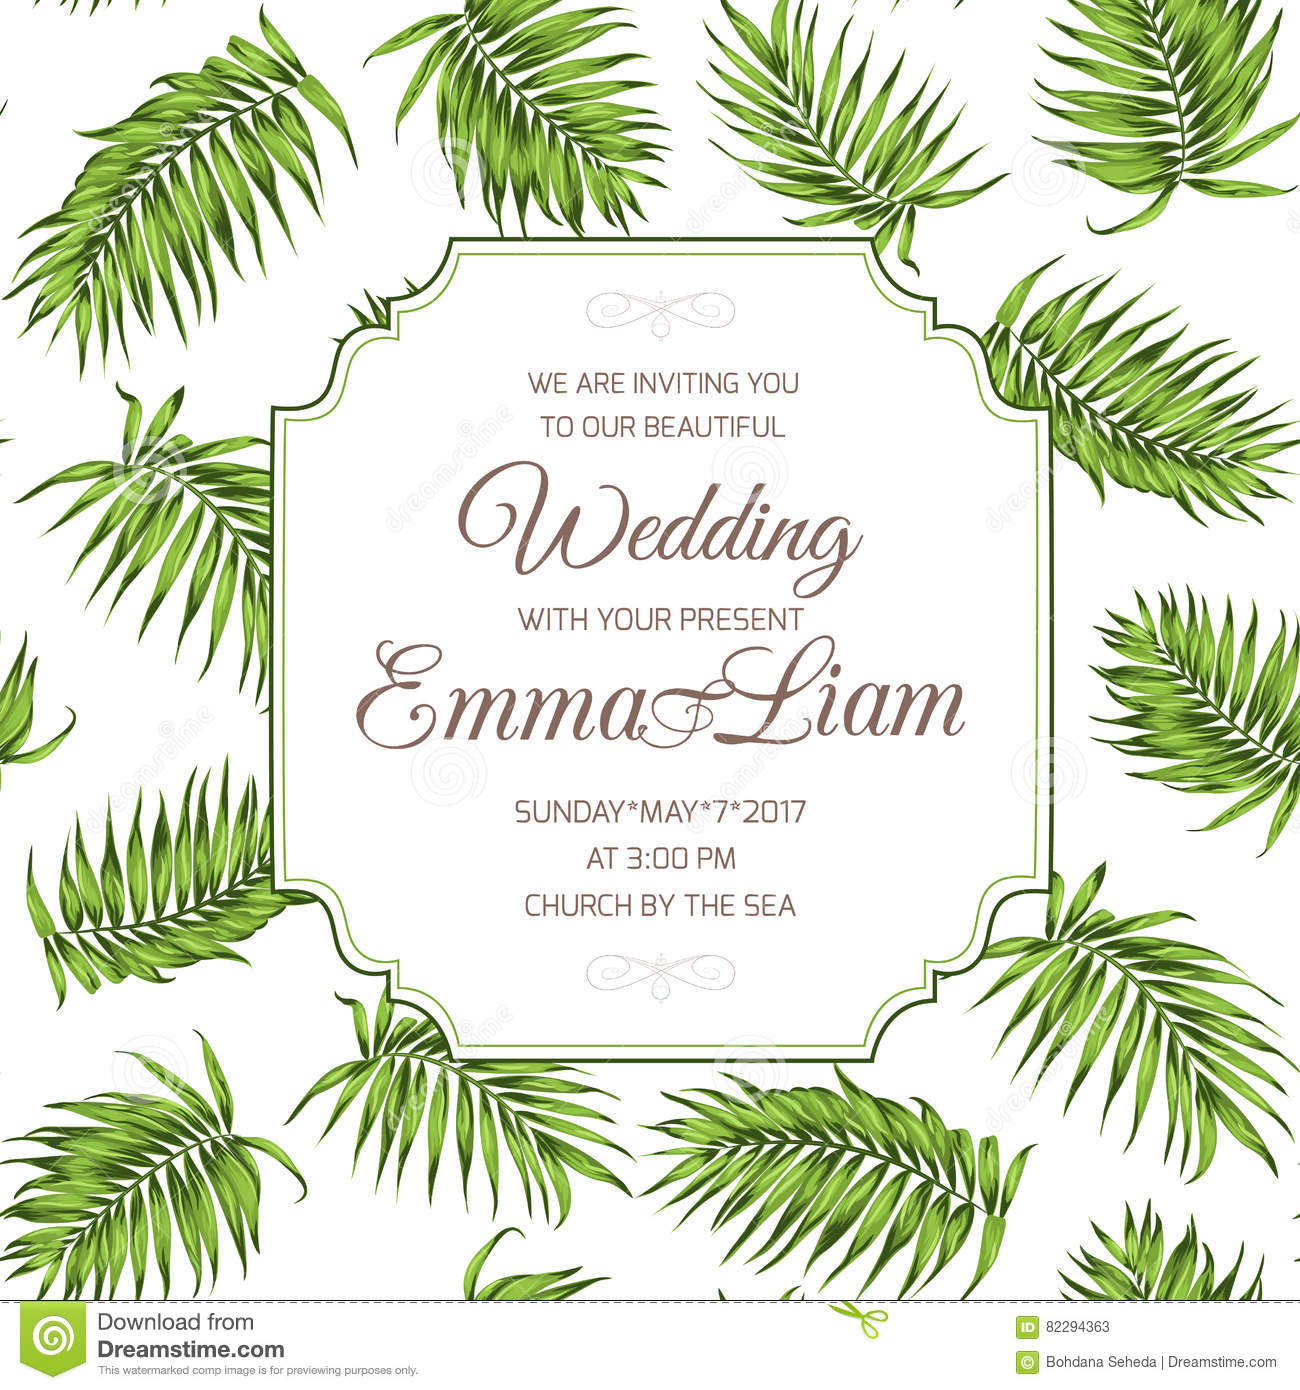 wedding invitation card greenery palm leaves rsvp stock